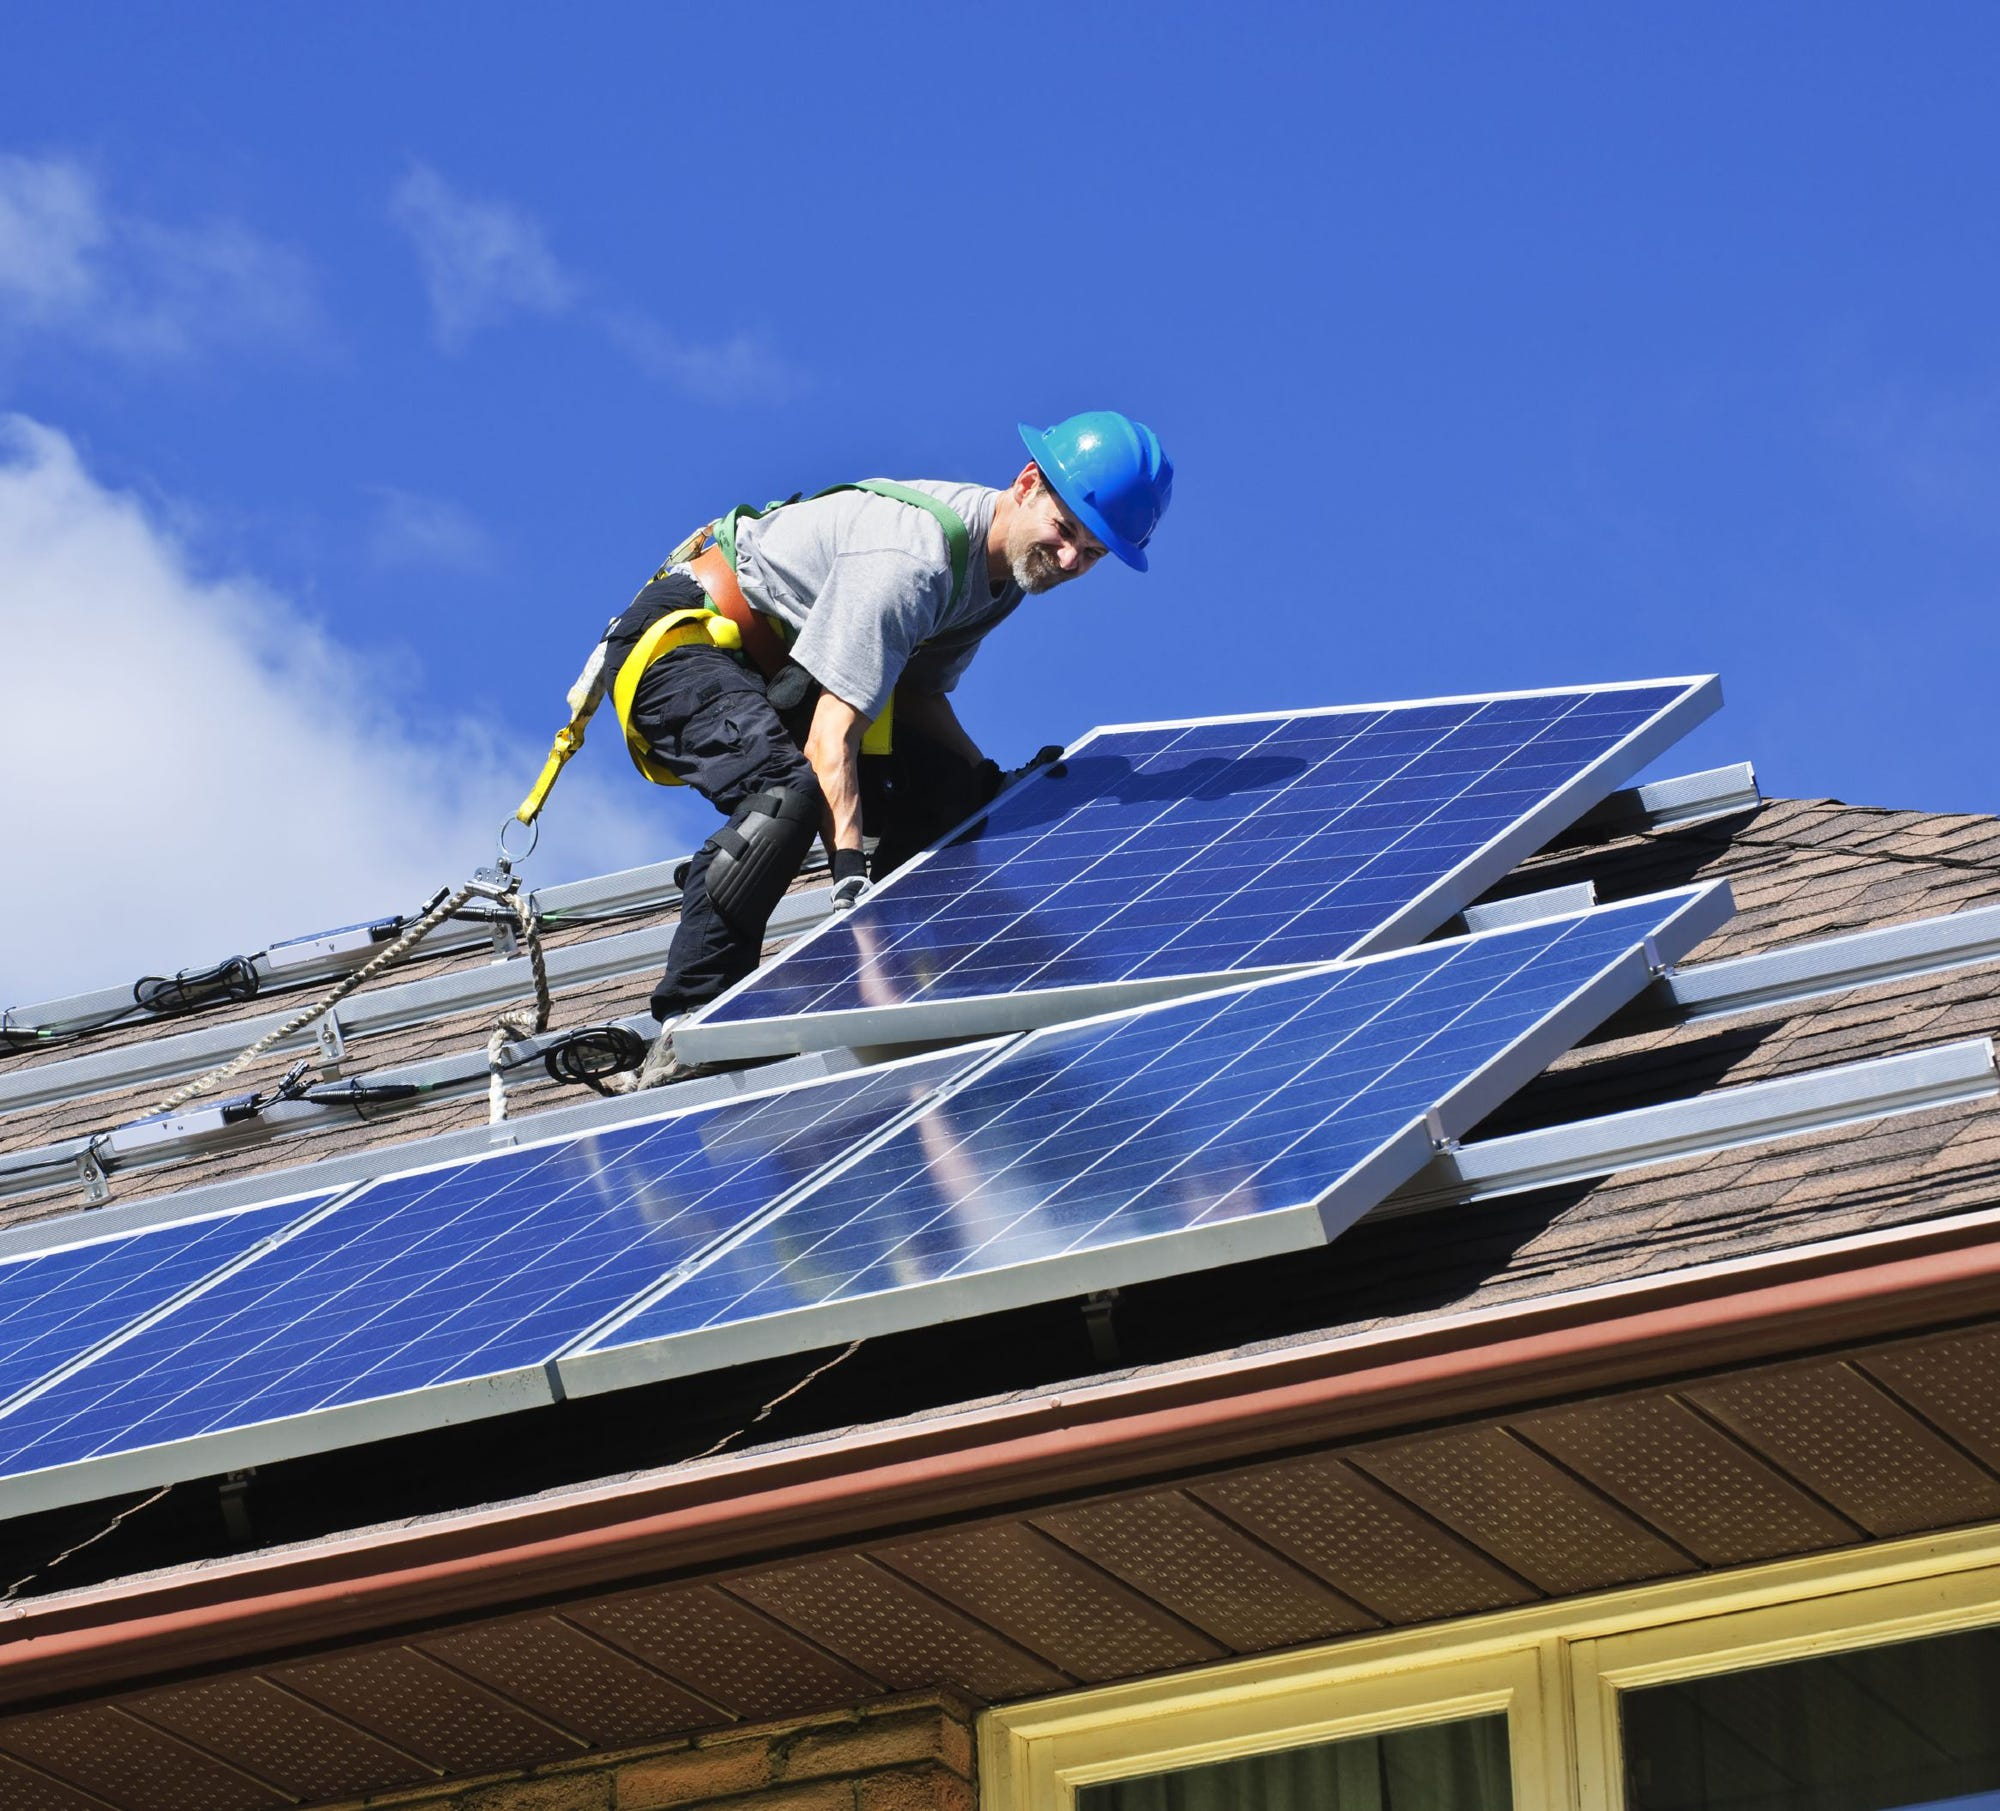 are solar panels worth it? 10 things to consider before installingsolar panels install